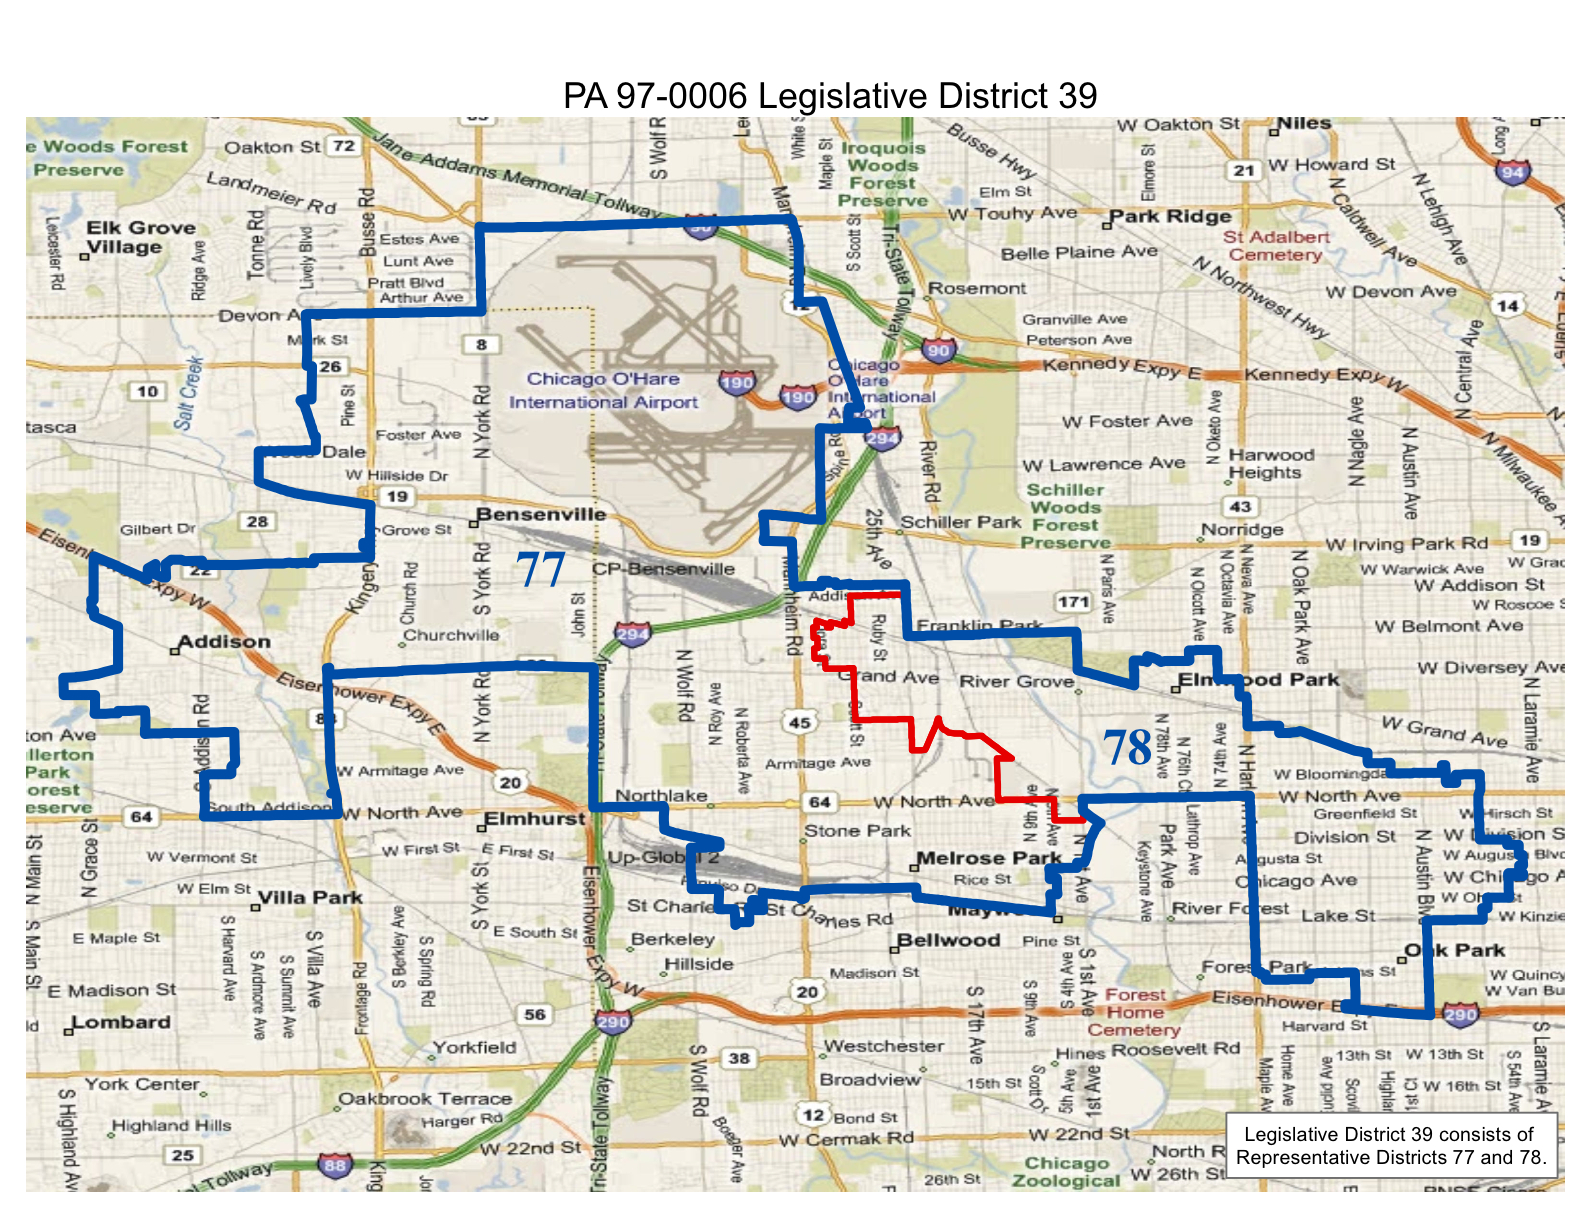 Primary General Elections Voter Guide - Illinois 13th congressional district